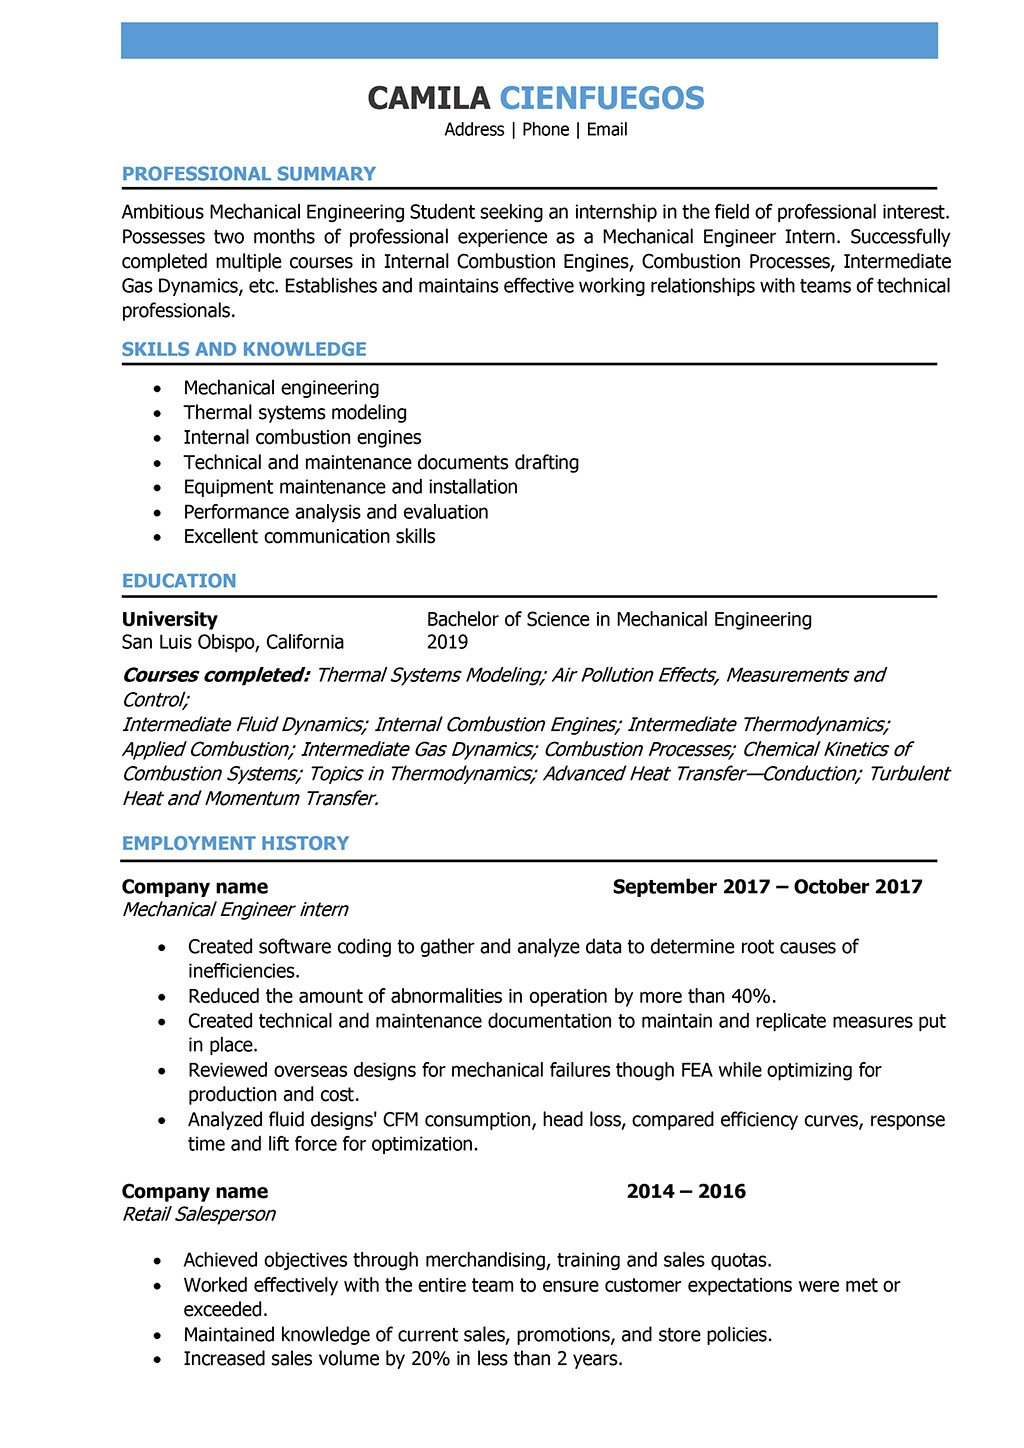 Mechanical Engineering Resume Template Mechanical Engineer Resume Samples and Writing Guide